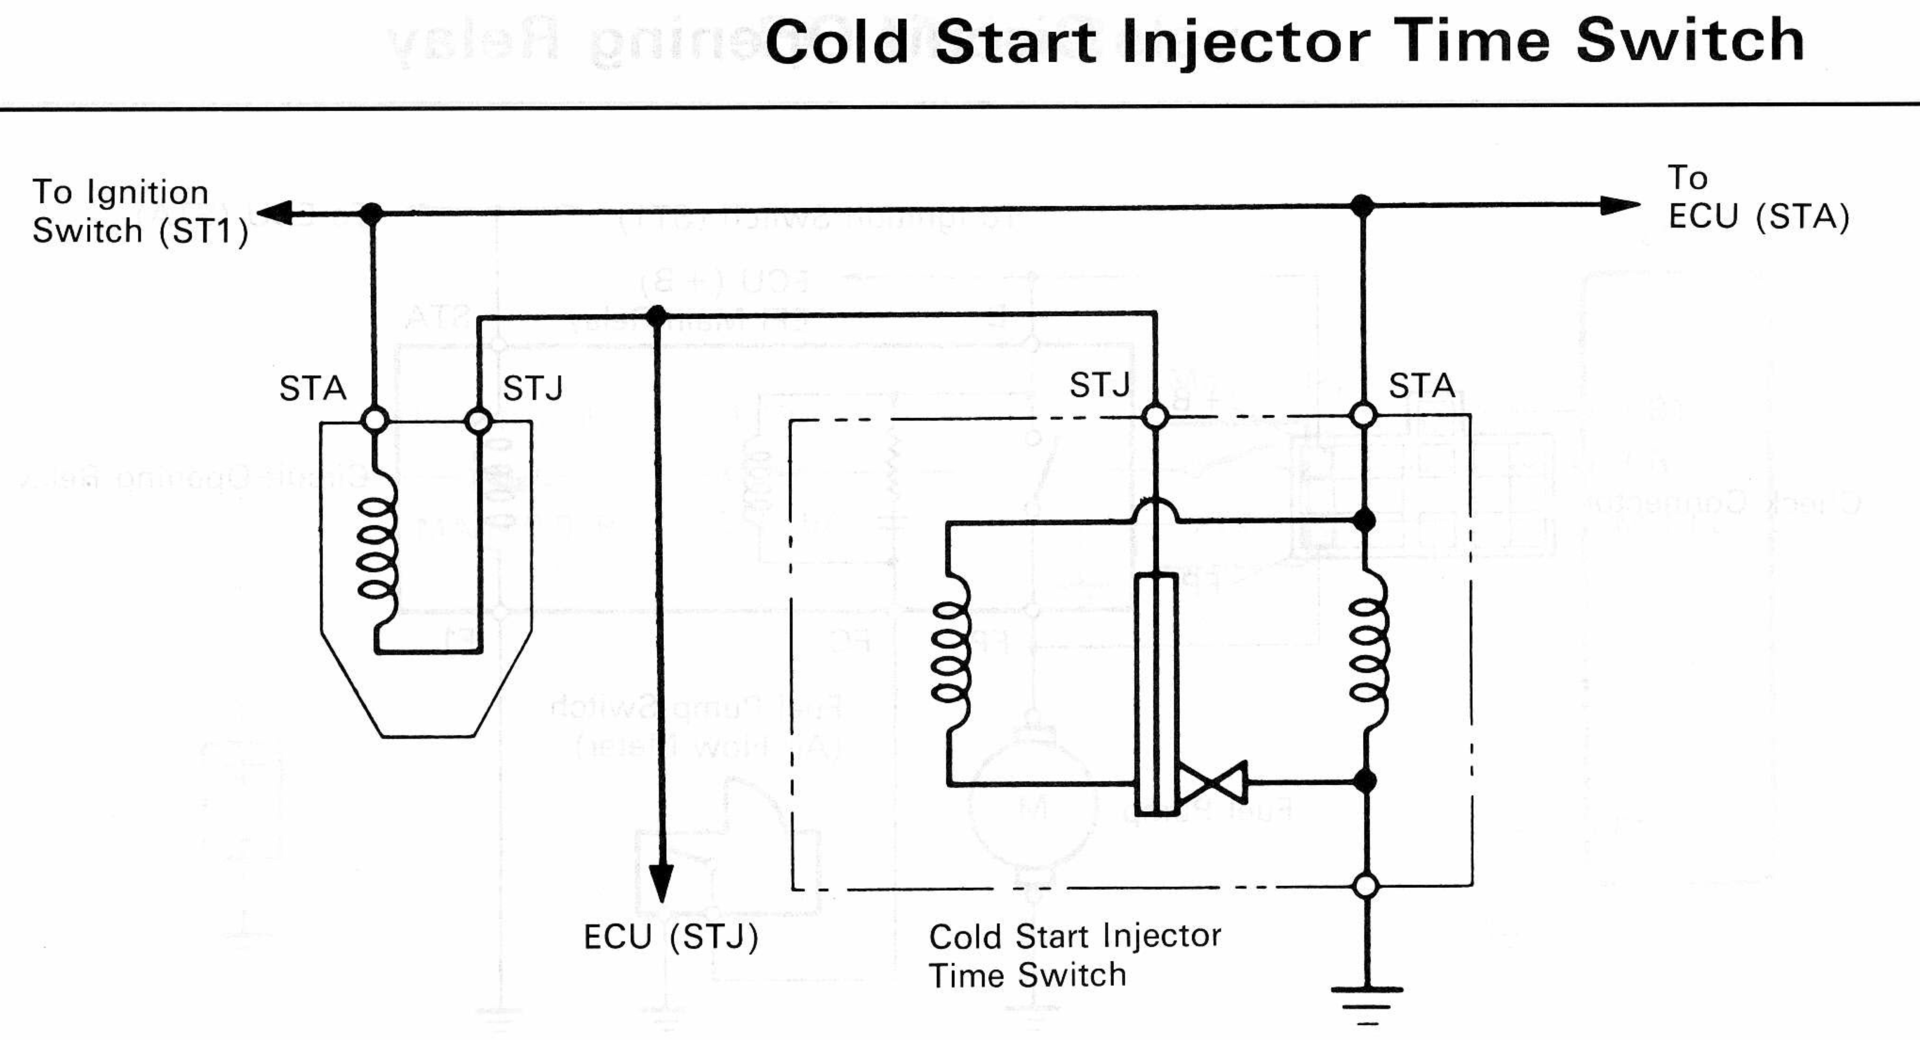 22re cold start wiring diagram testing a cold start injector help ih8mud forum  testing a cold start injector help